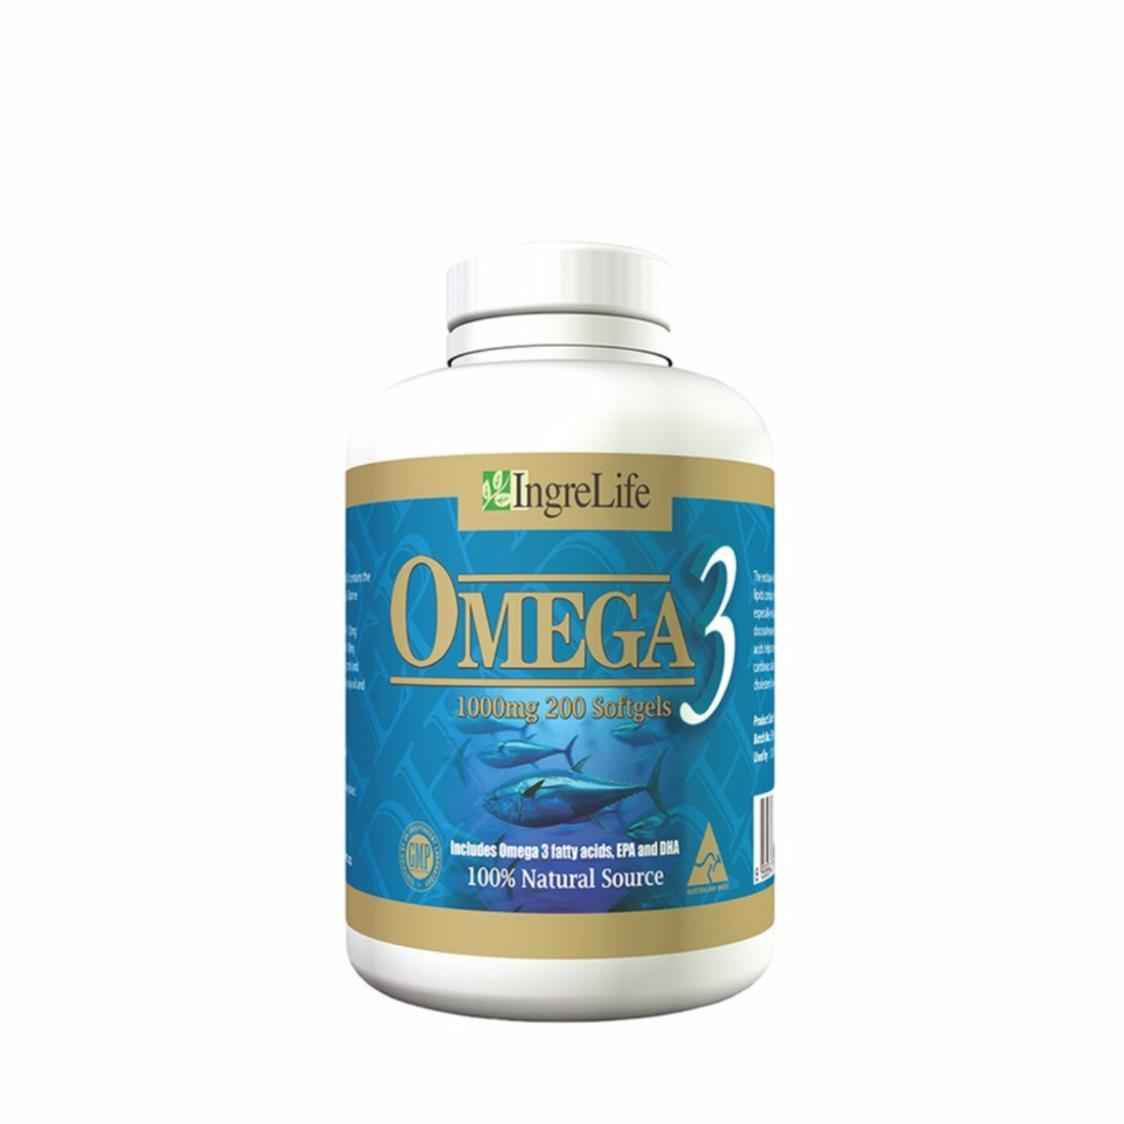 Omega 3 200 Softgels